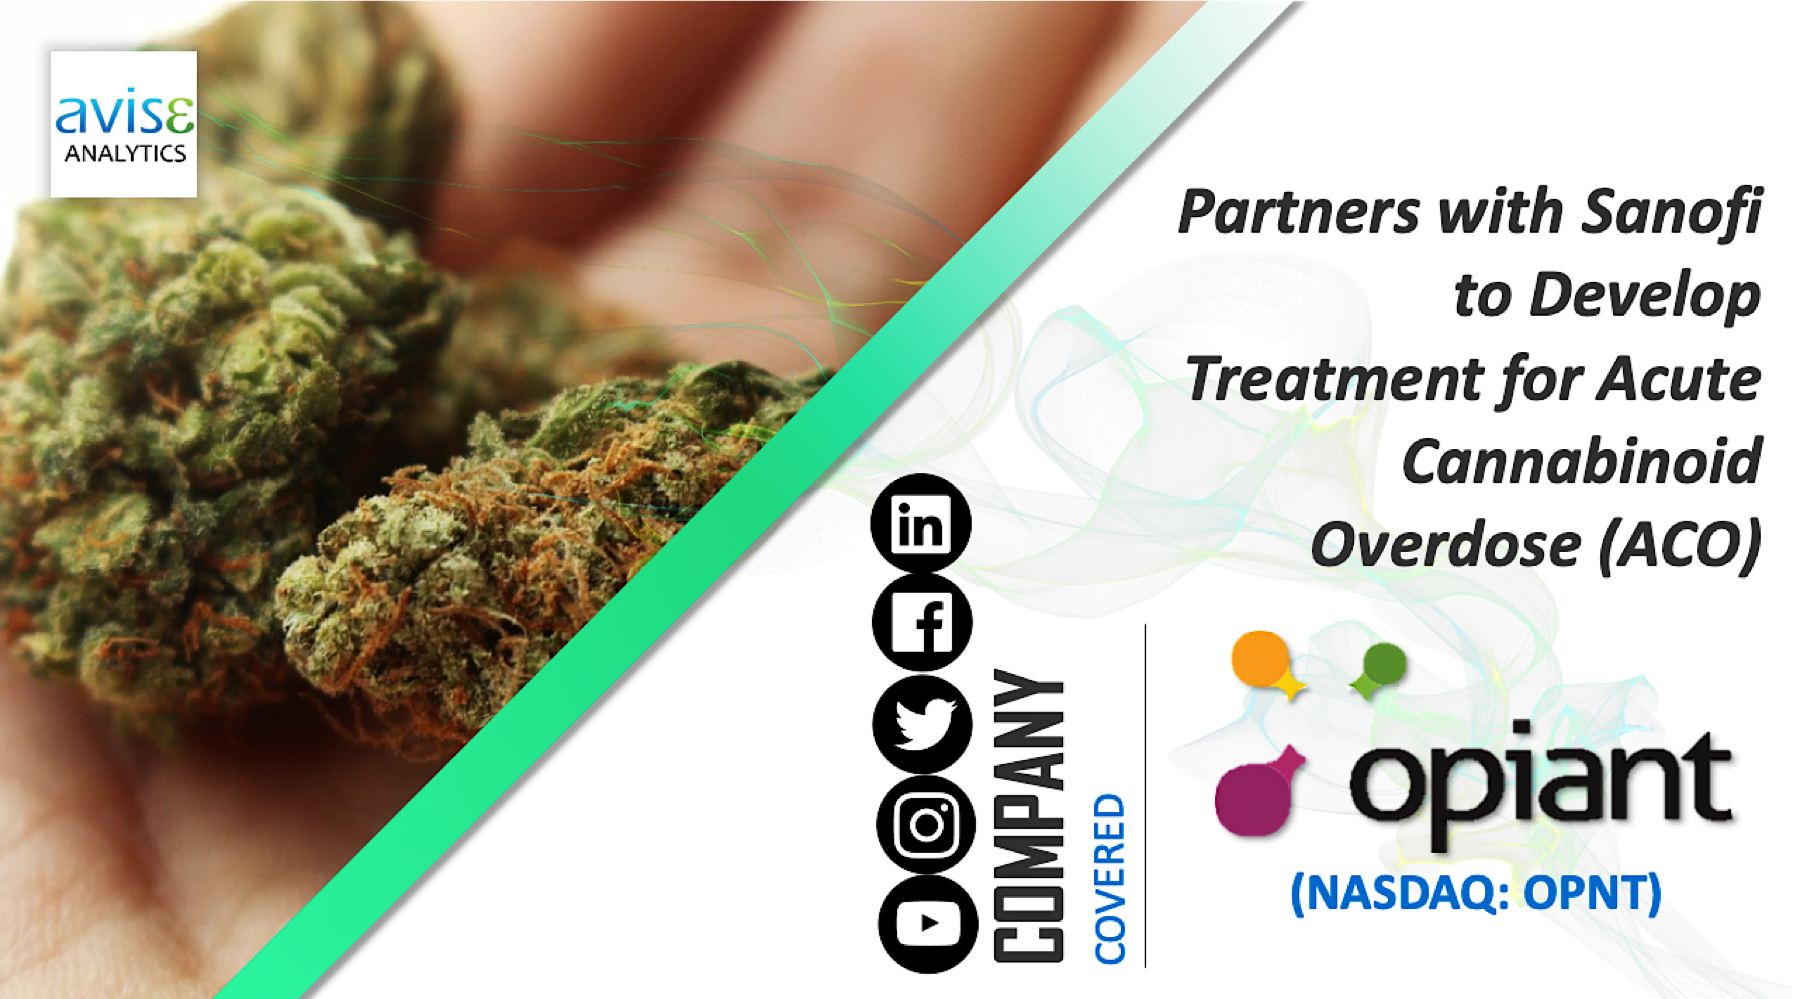 Opiant Pharmaceuticals – Partners with Sanofi to develop